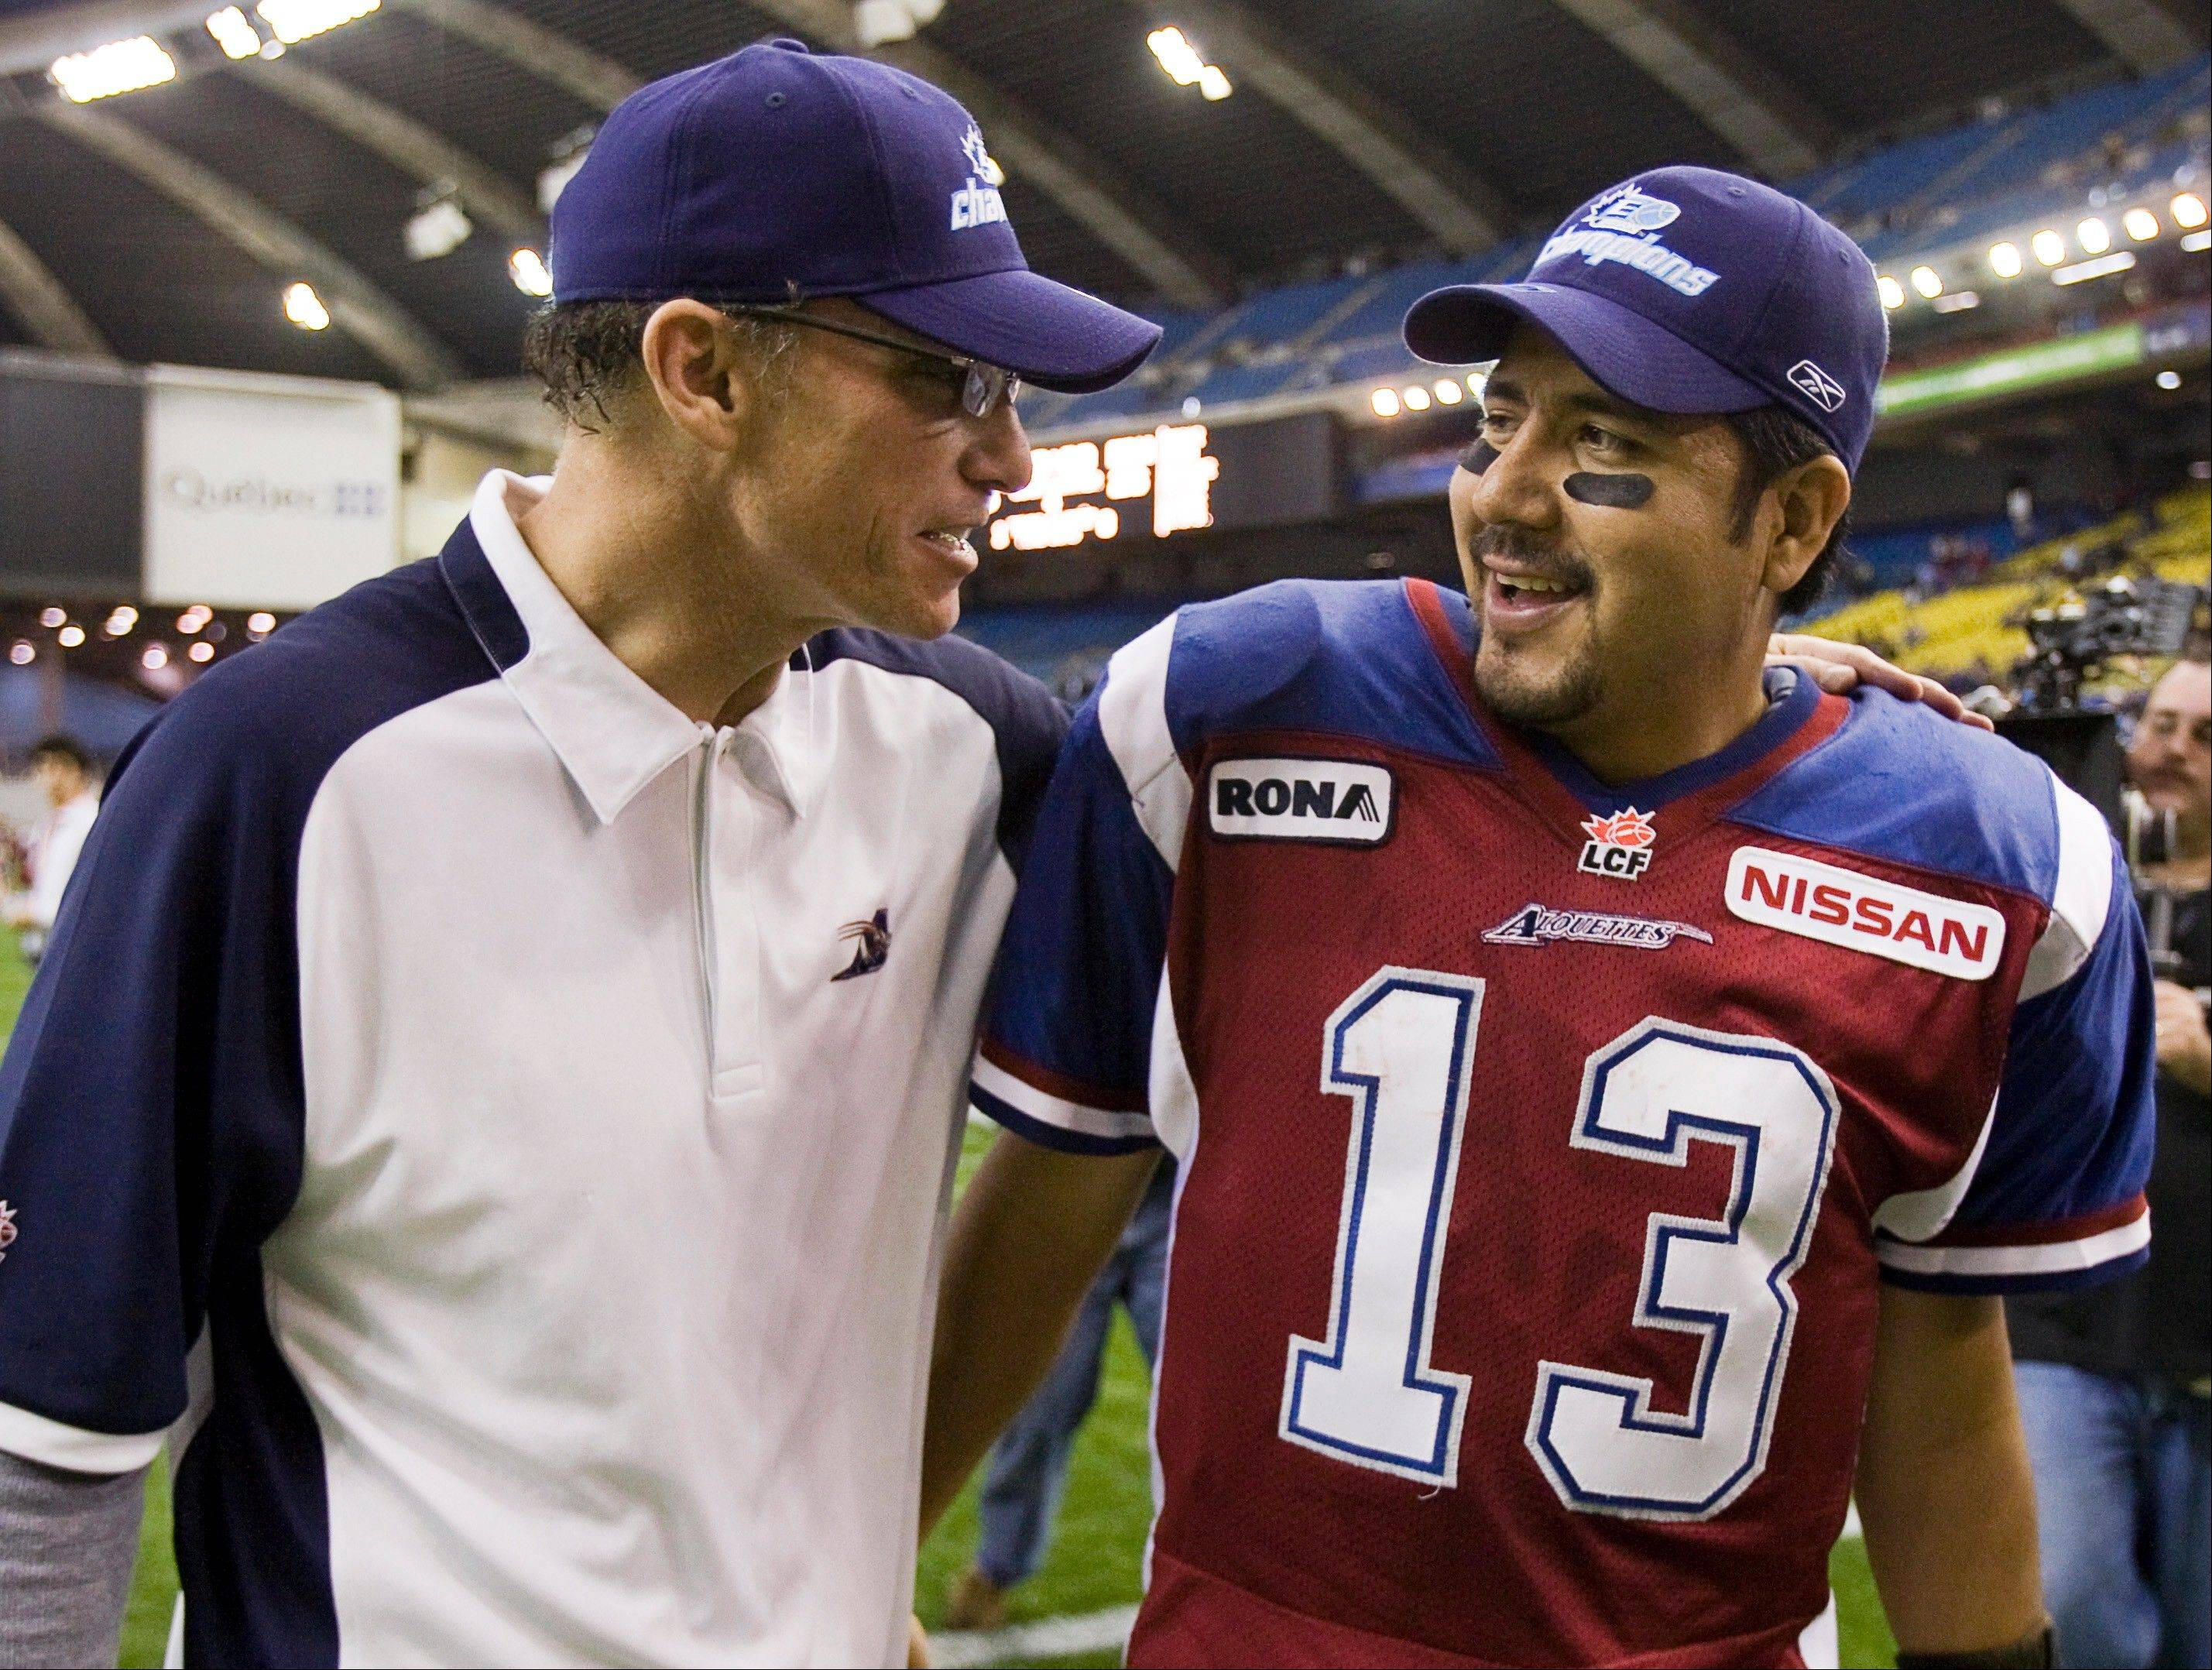 In five seasons with the Montreal Alouettes of the Canadian Football League, Trestman's teams went 59-31 during the regular season and won two Grey Cups. QB Anthony Calvillo, right, was named the top CFL player in back-to-back seasons.